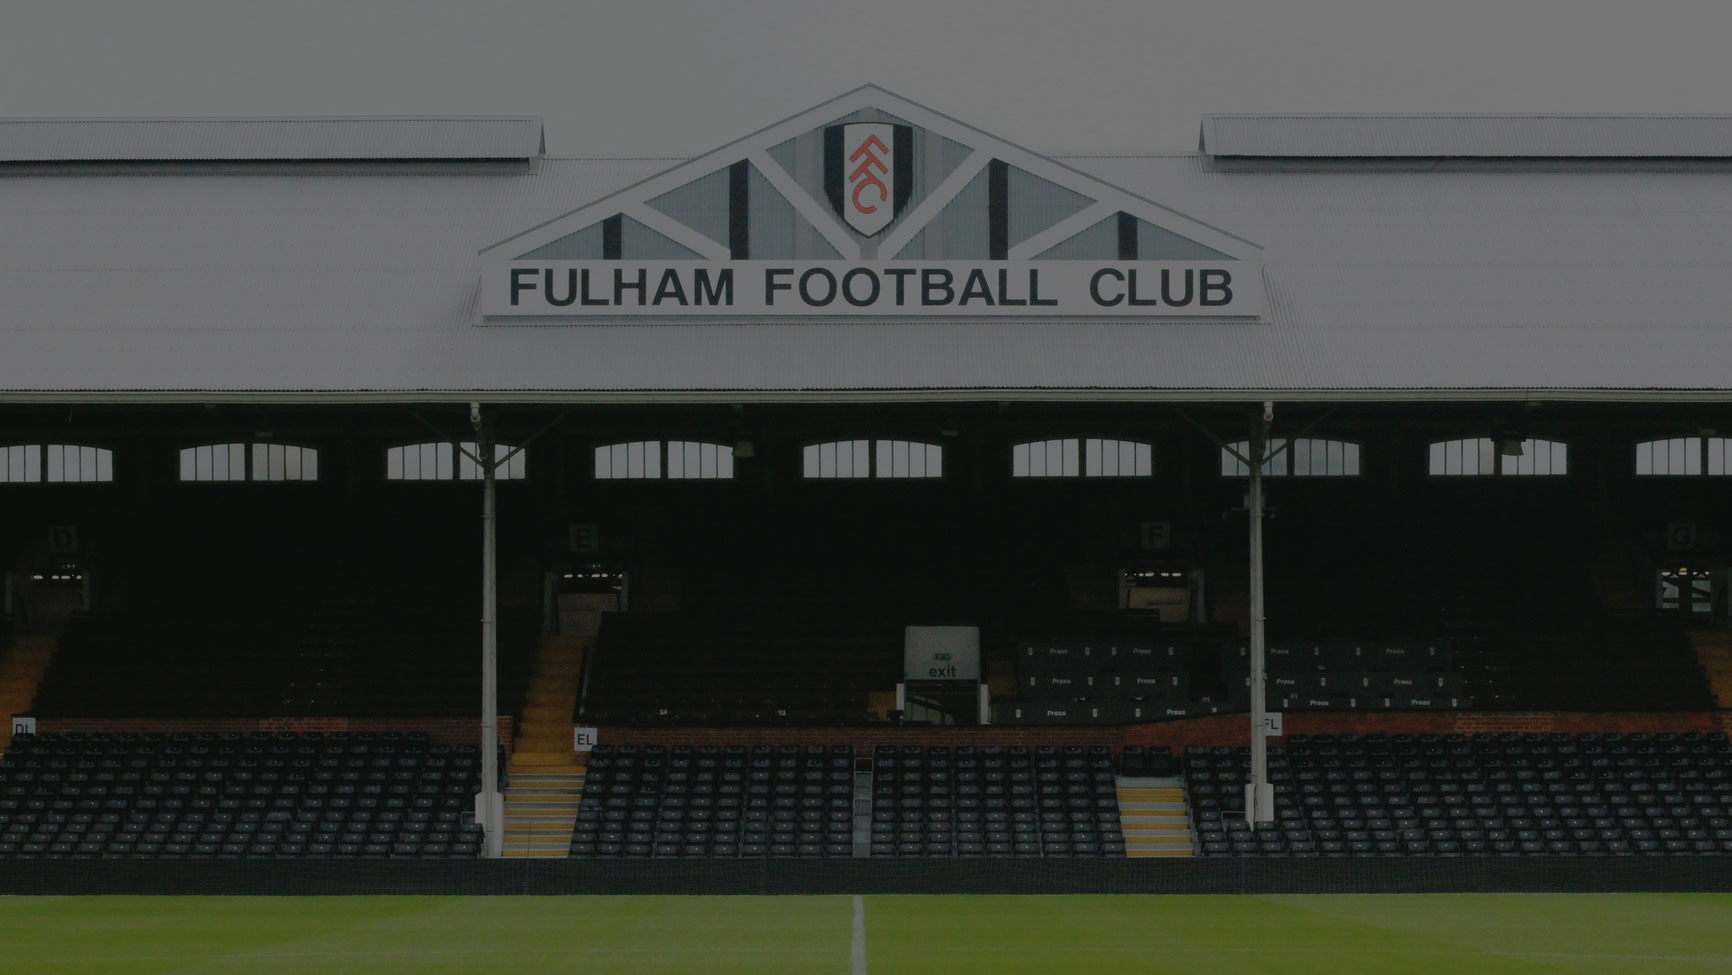 Nbc Fulham Football Club Case Study